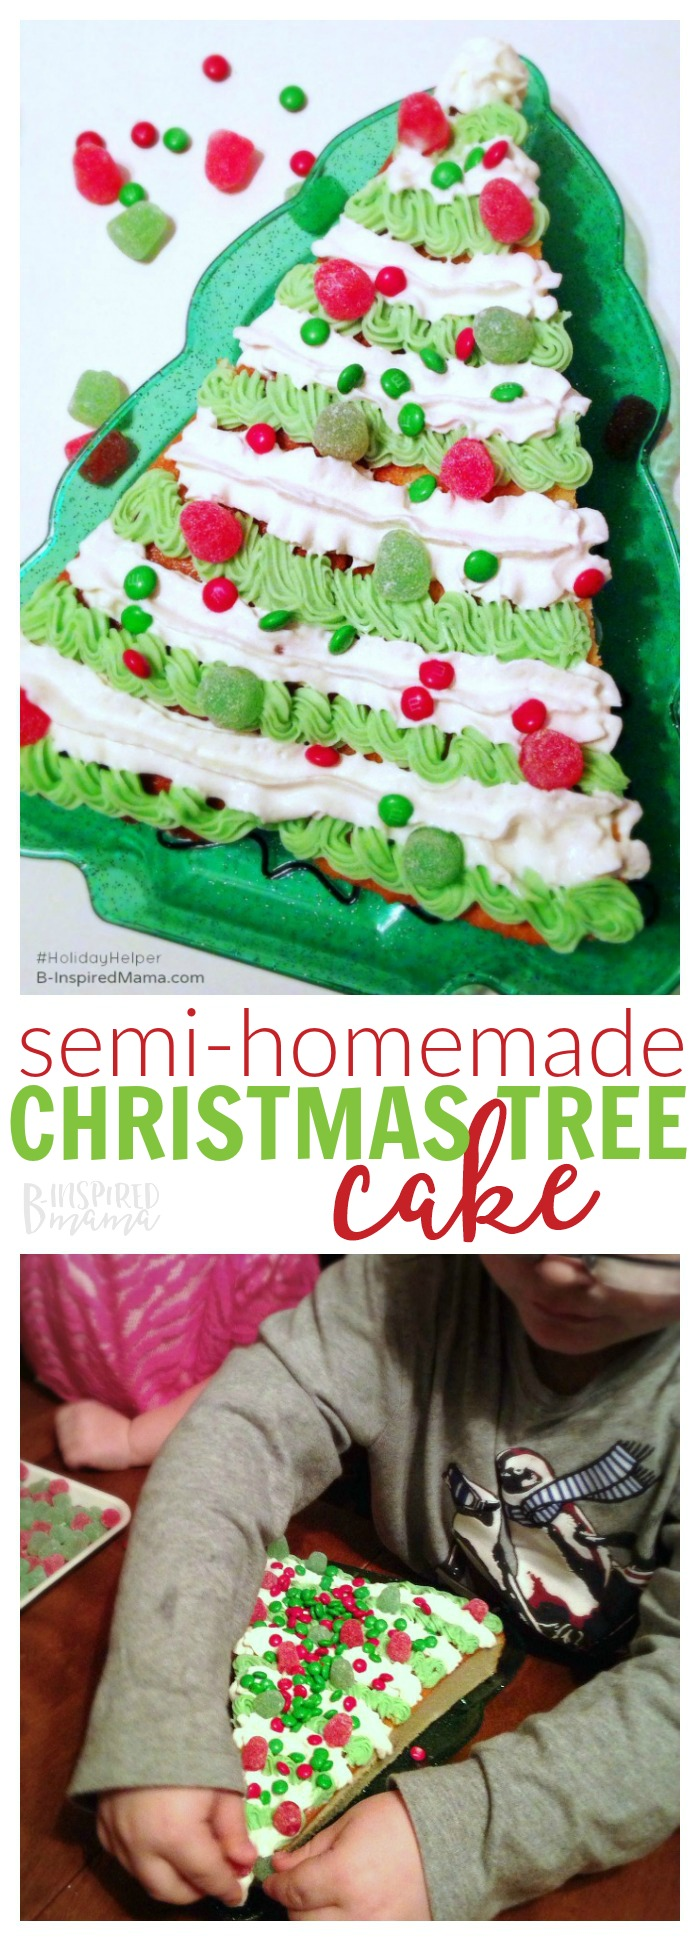 A semi-homemade Christmas tree-shaped Christmas cake recipe SO EASY the kids can make it themselves! It'll become their new favorite holiday tradition! #christmas #christmasrecipe #kidsrecipe #funfood #easyrecipe #kbn #kbnmoms #binspiredmama #holiday #kidsinthekitchen